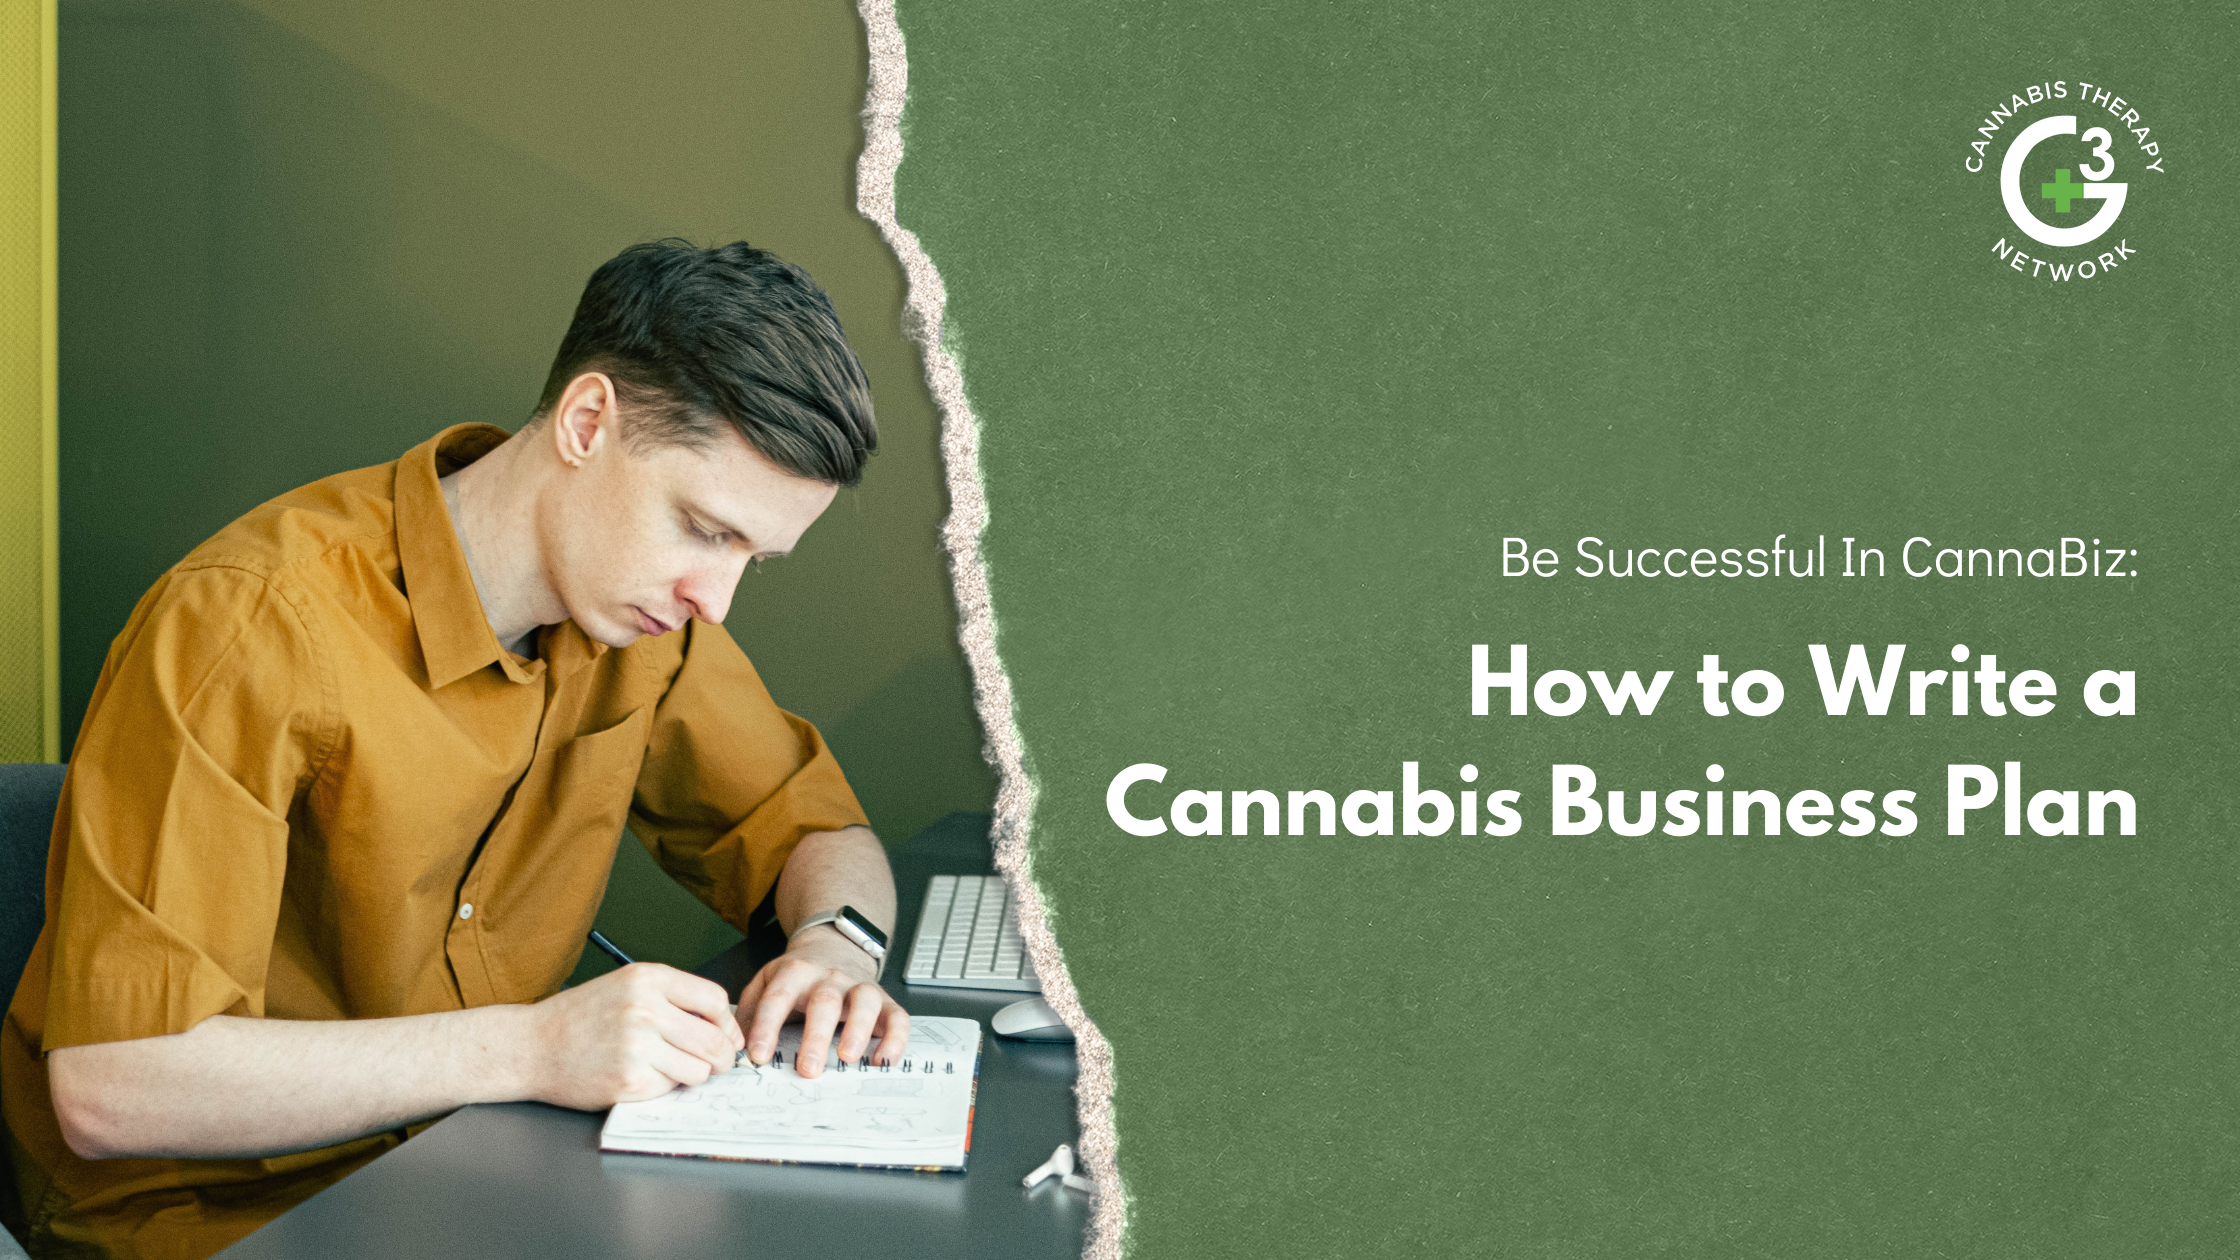 Writing a Cannabis Business Plan - How to be Successful